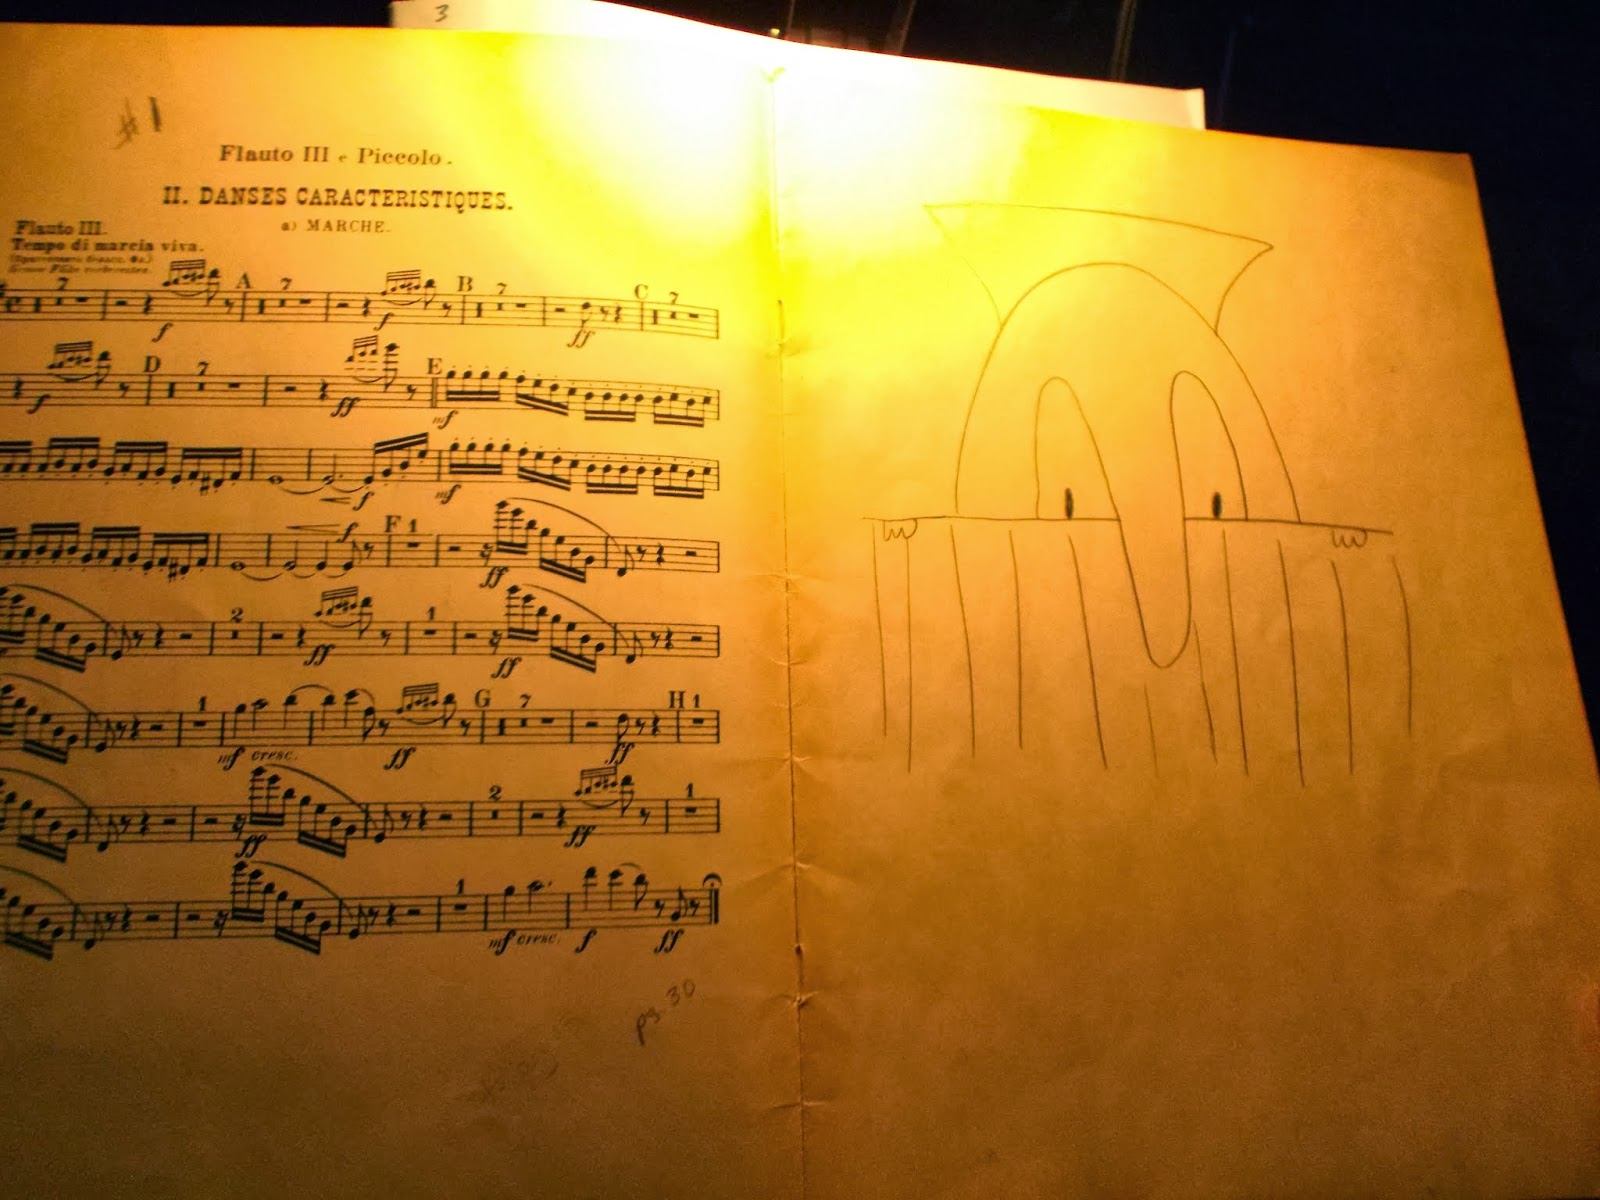 This Is The Piccolo Part From Which Cynthia D'andrea Has Been Playing Since  Who Knows When The Drawing Of Kilroy Was Done When She Was Hired (?) To  Play,